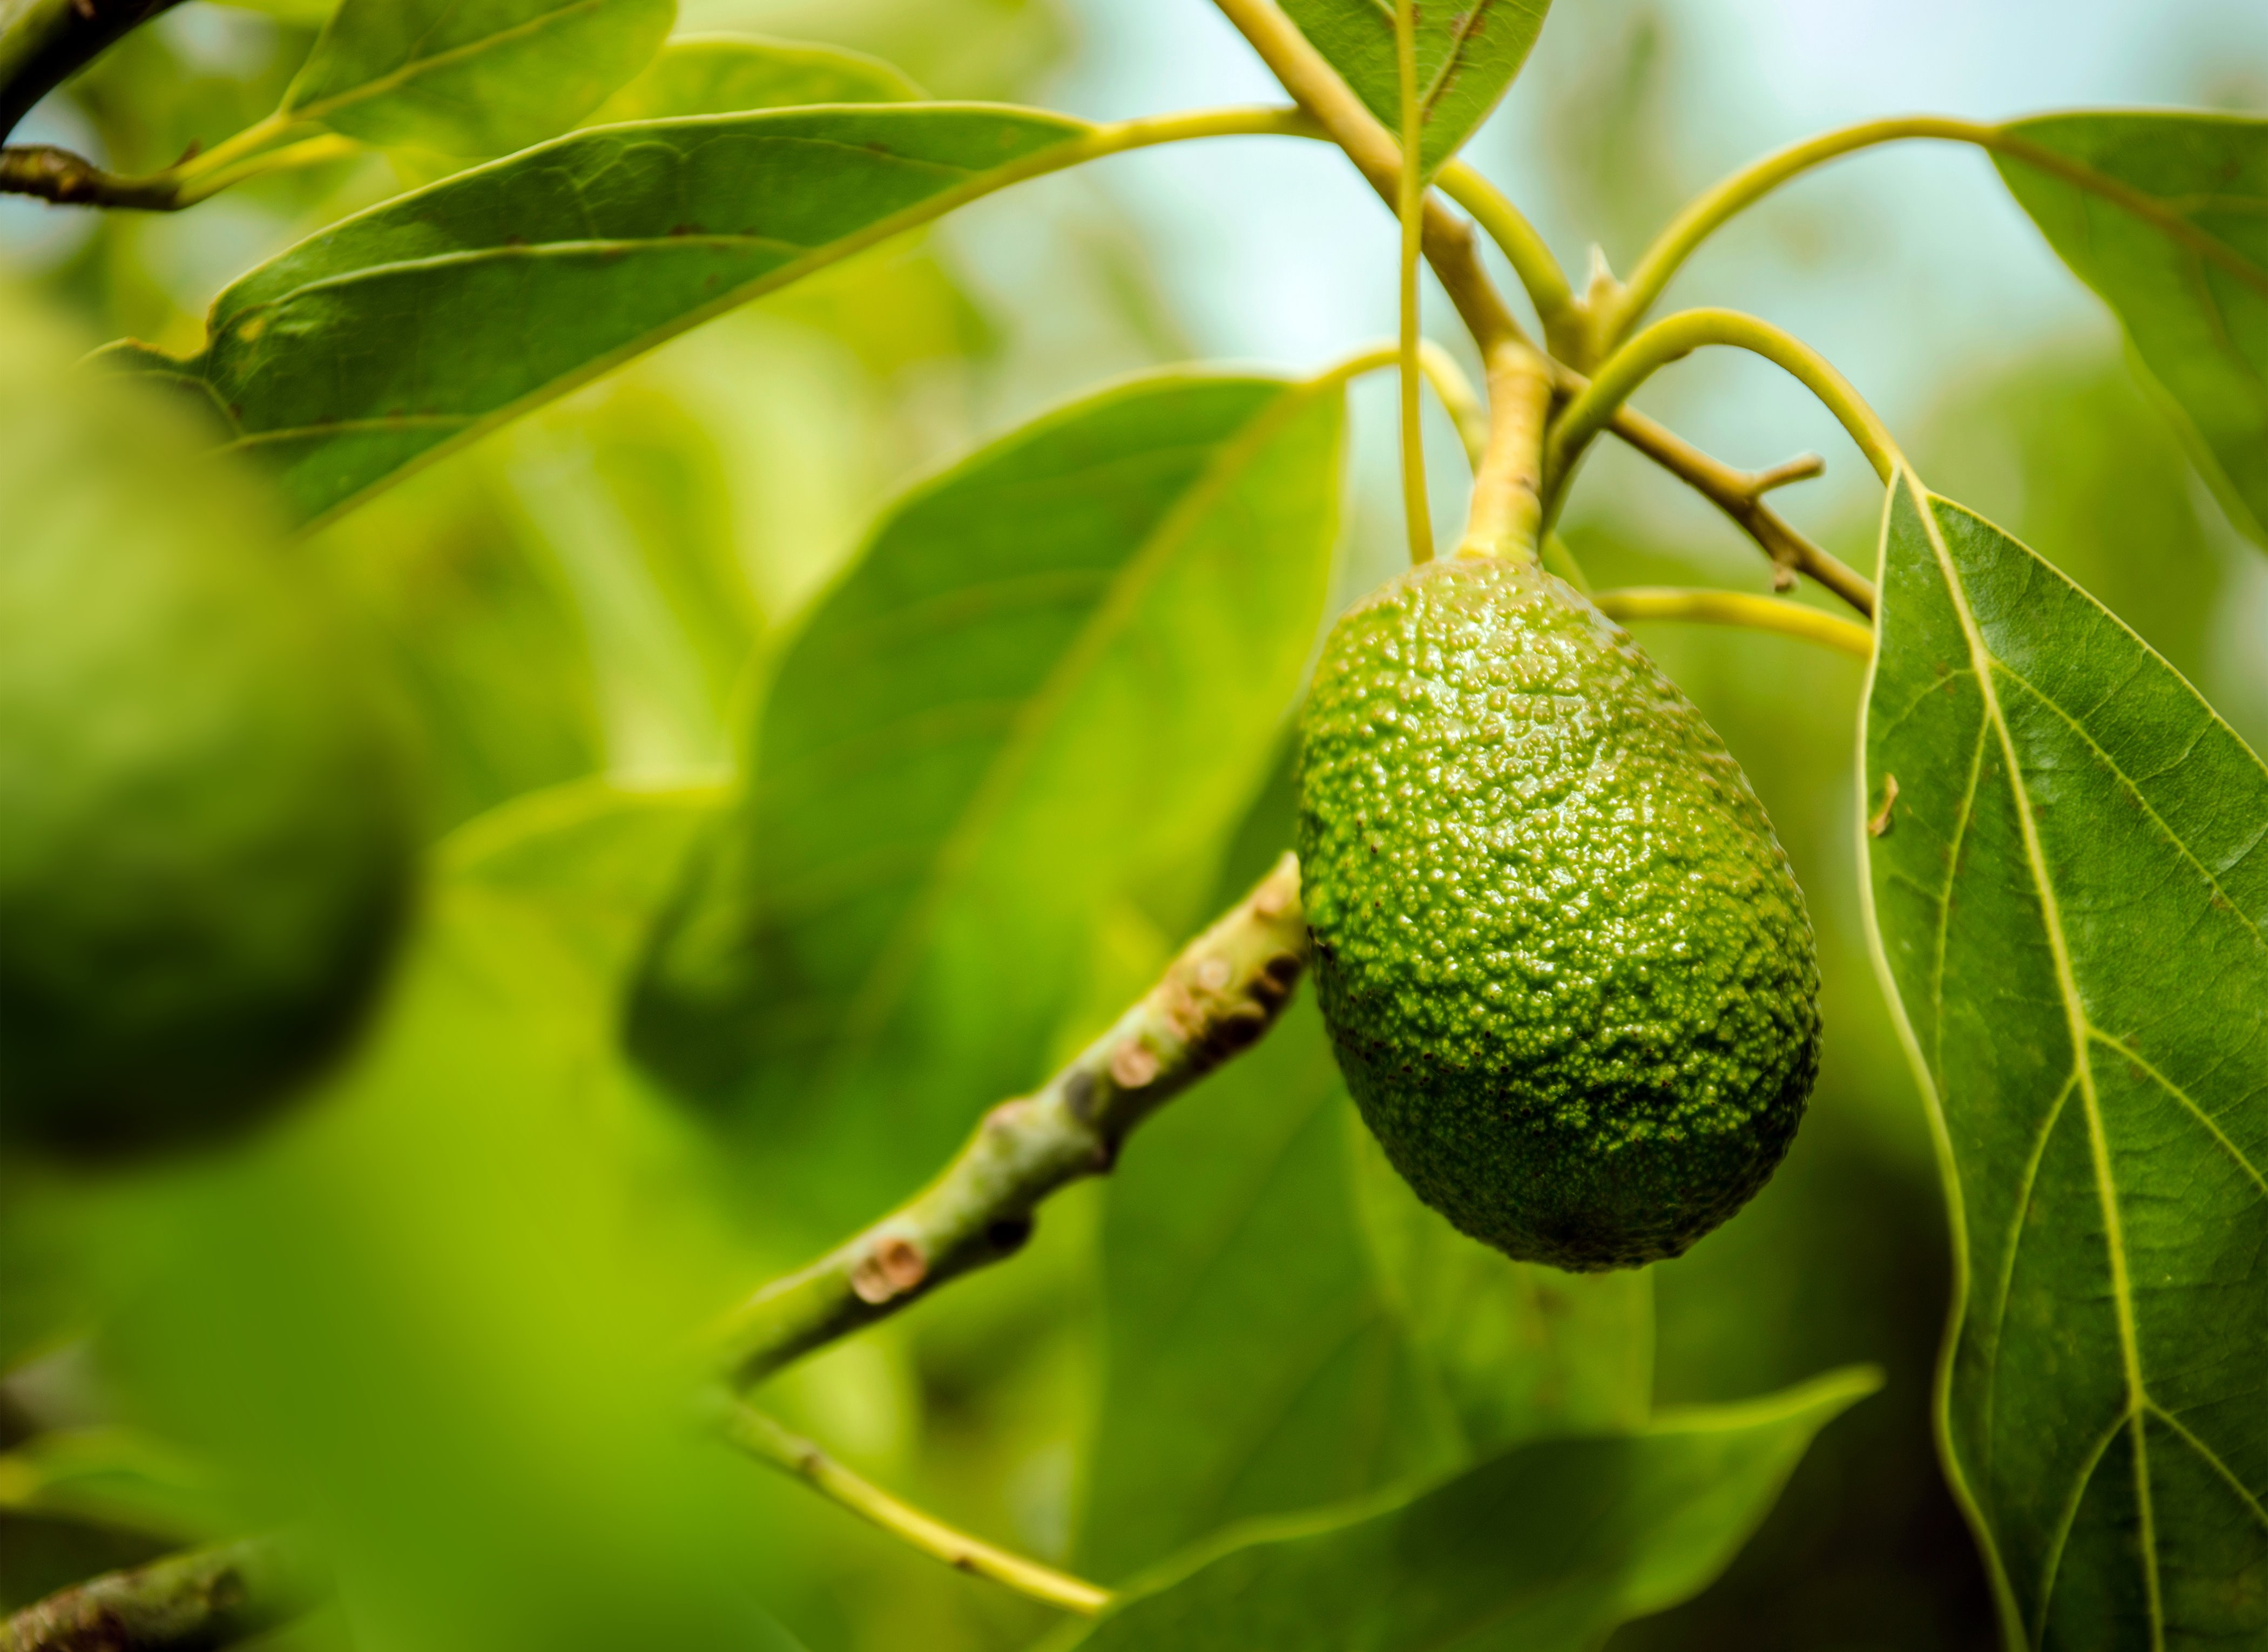 One avocado in thousands: Using the power of the cloud to improve quality and business processes